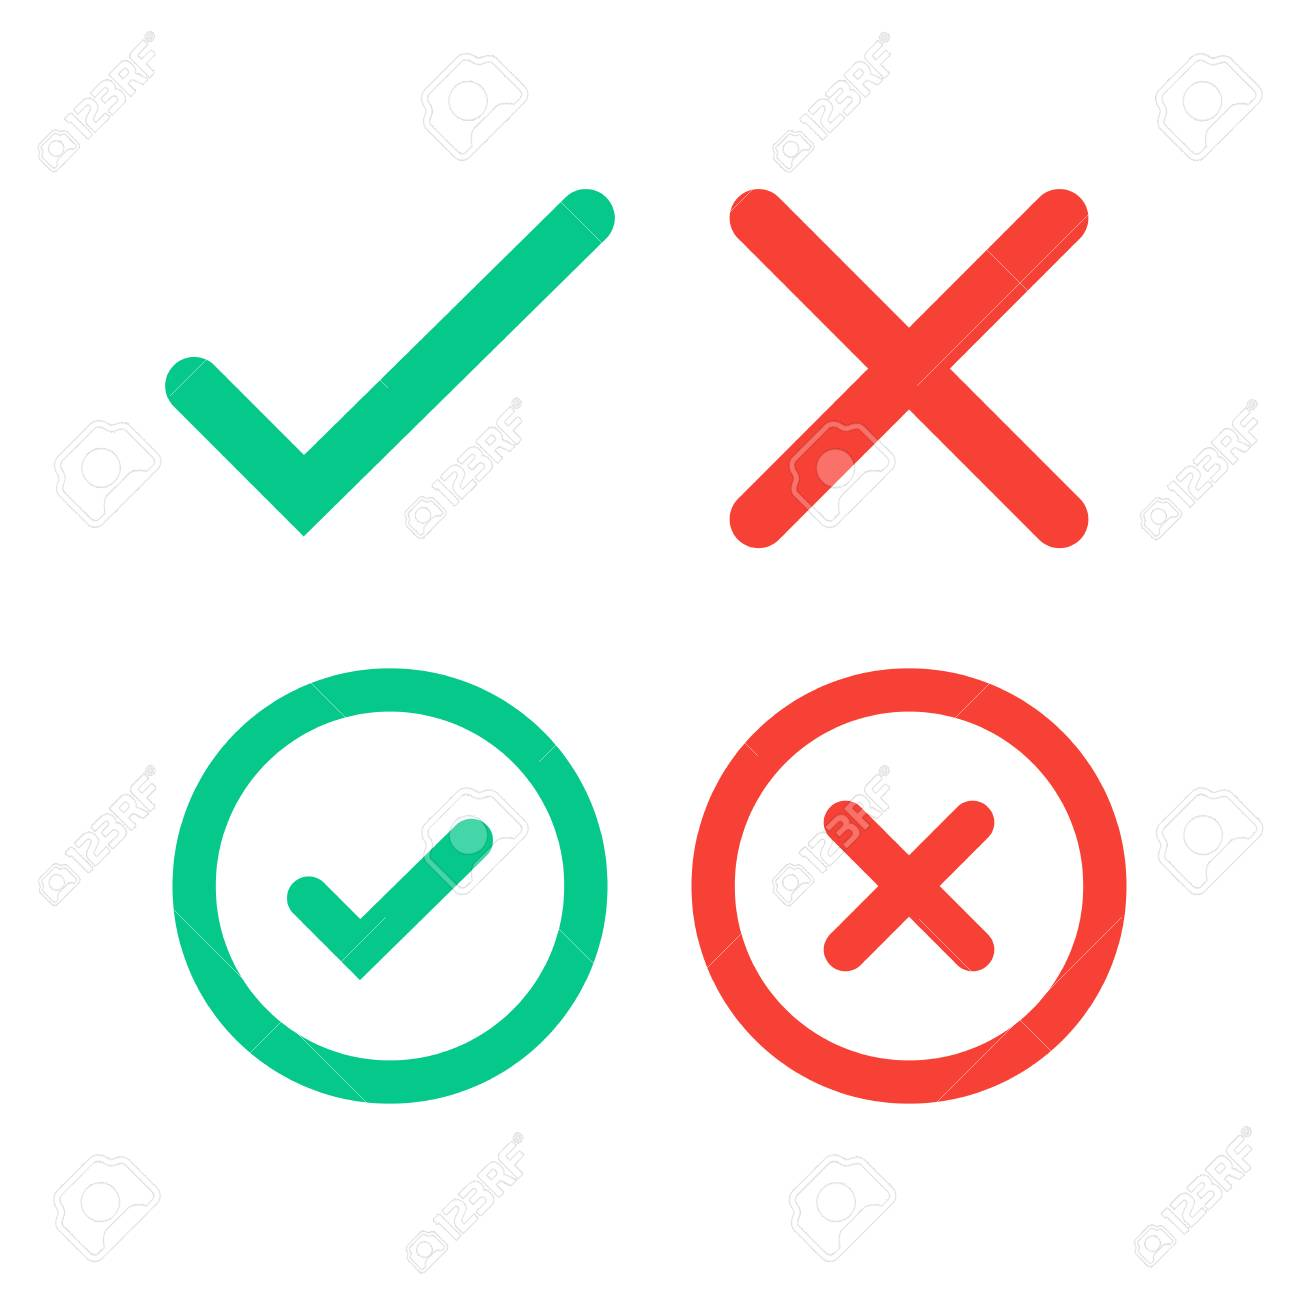 Green Tick And Red Cross Checkmarks In Circle Flat Icons Royalty